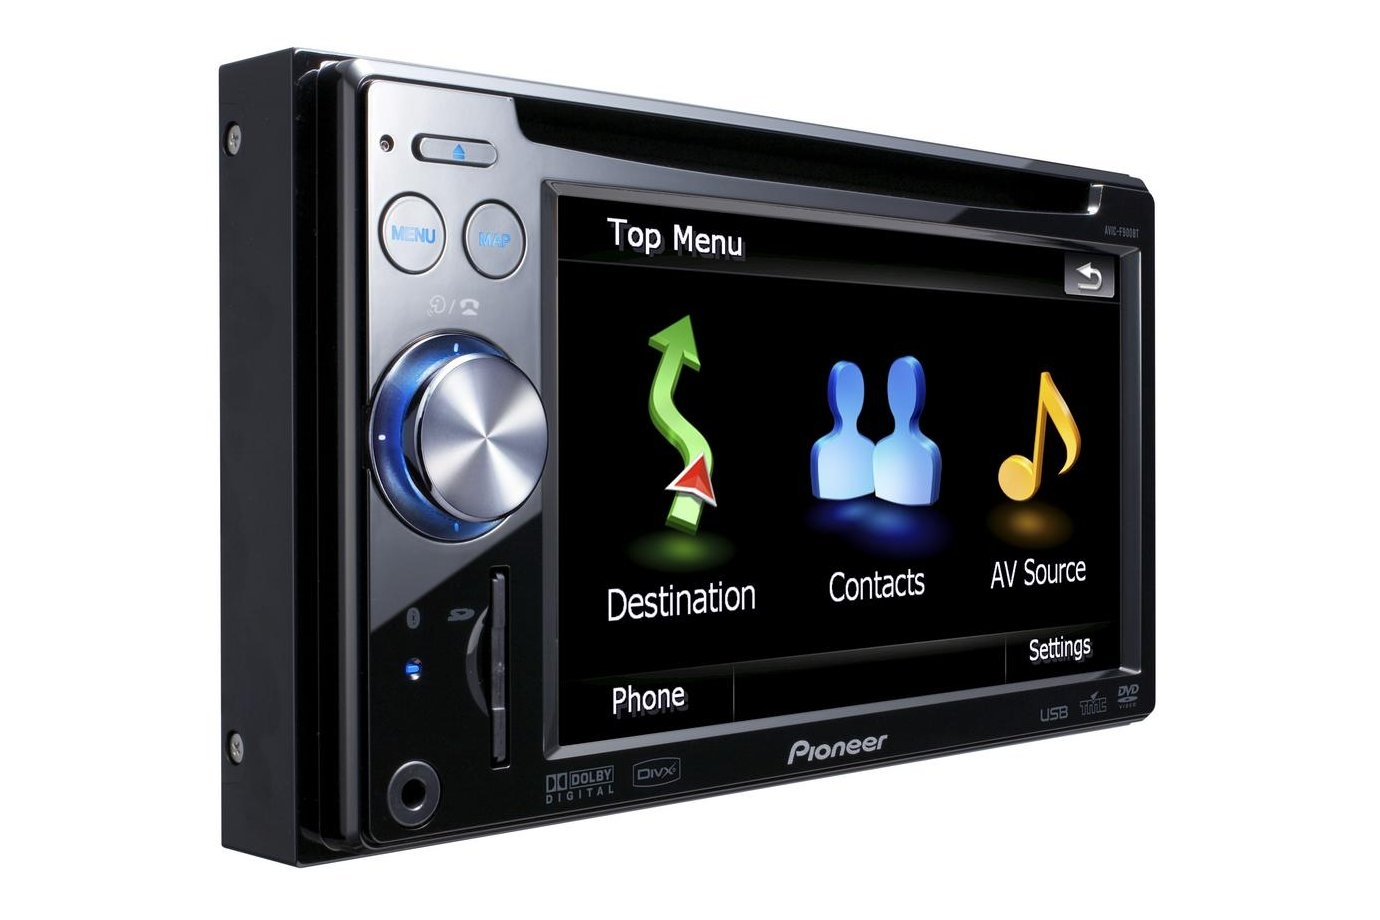 Pioneer Avic F900bt Review Excellent Aftermarket In Car Entertainment Gps Car Entertainment Gps Units Good Gear Guide